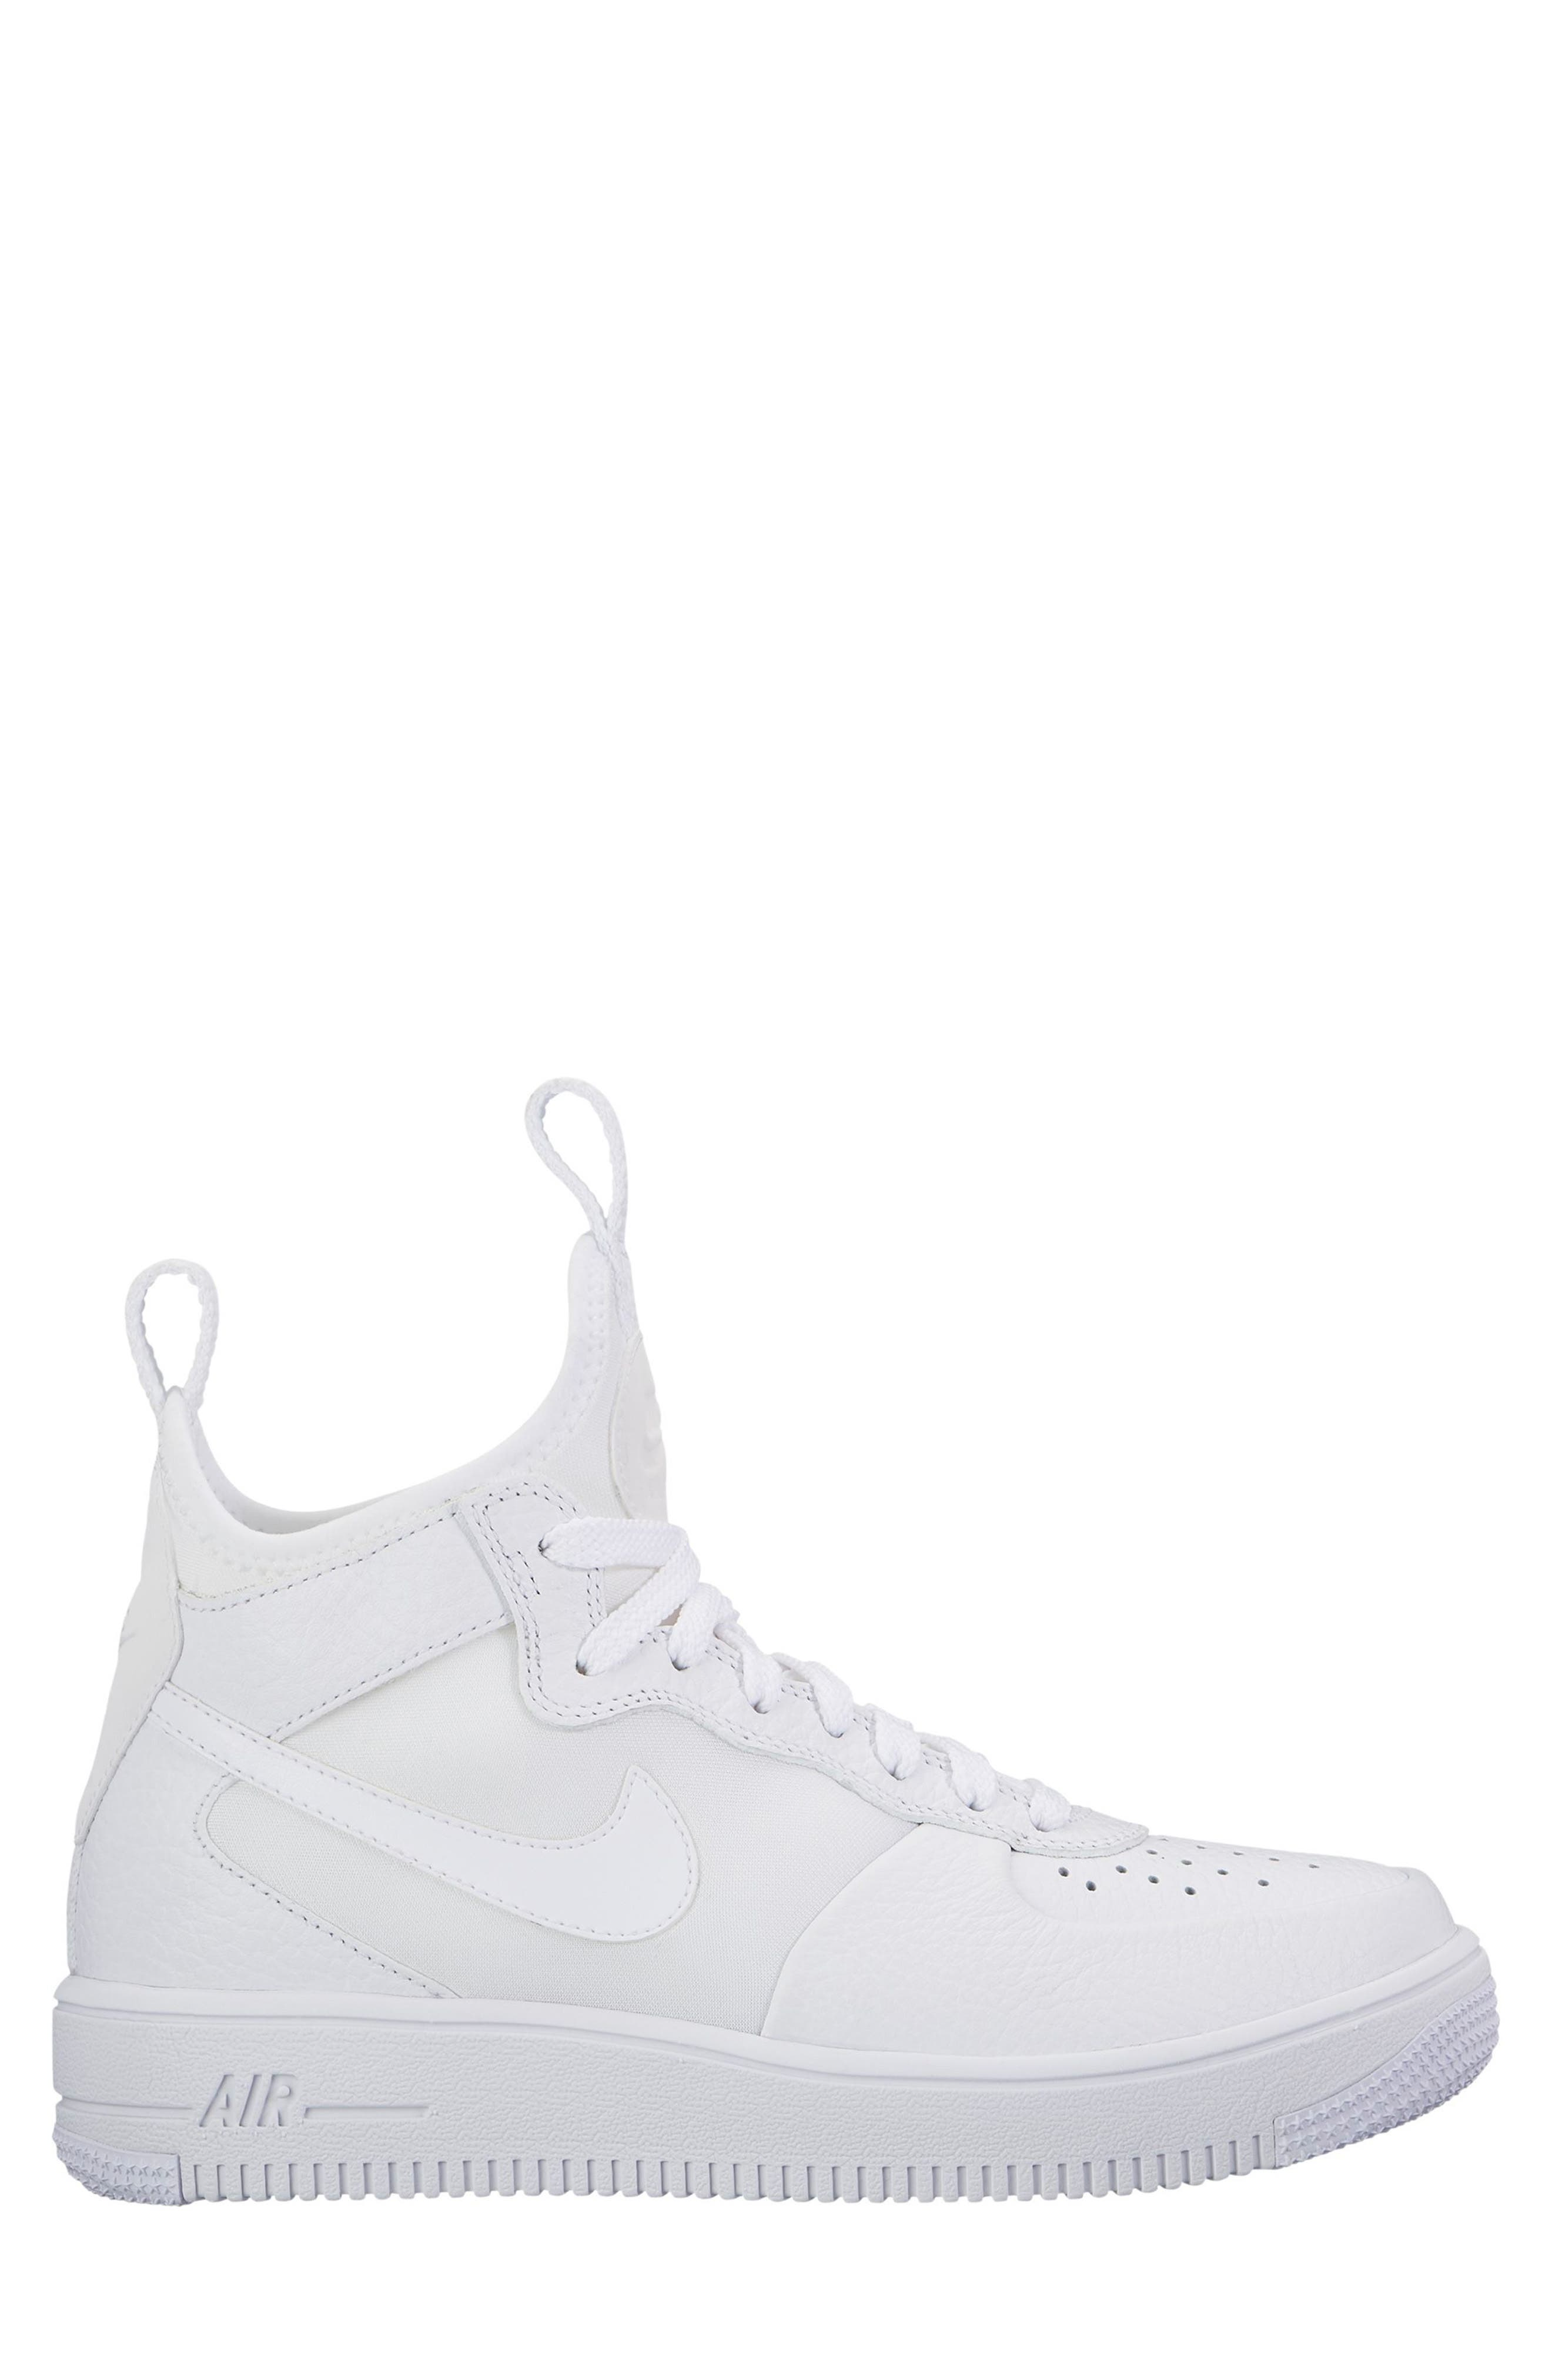 Main Image - Nike Air Force 1 Ultraforce Mid Sneaker (Women)